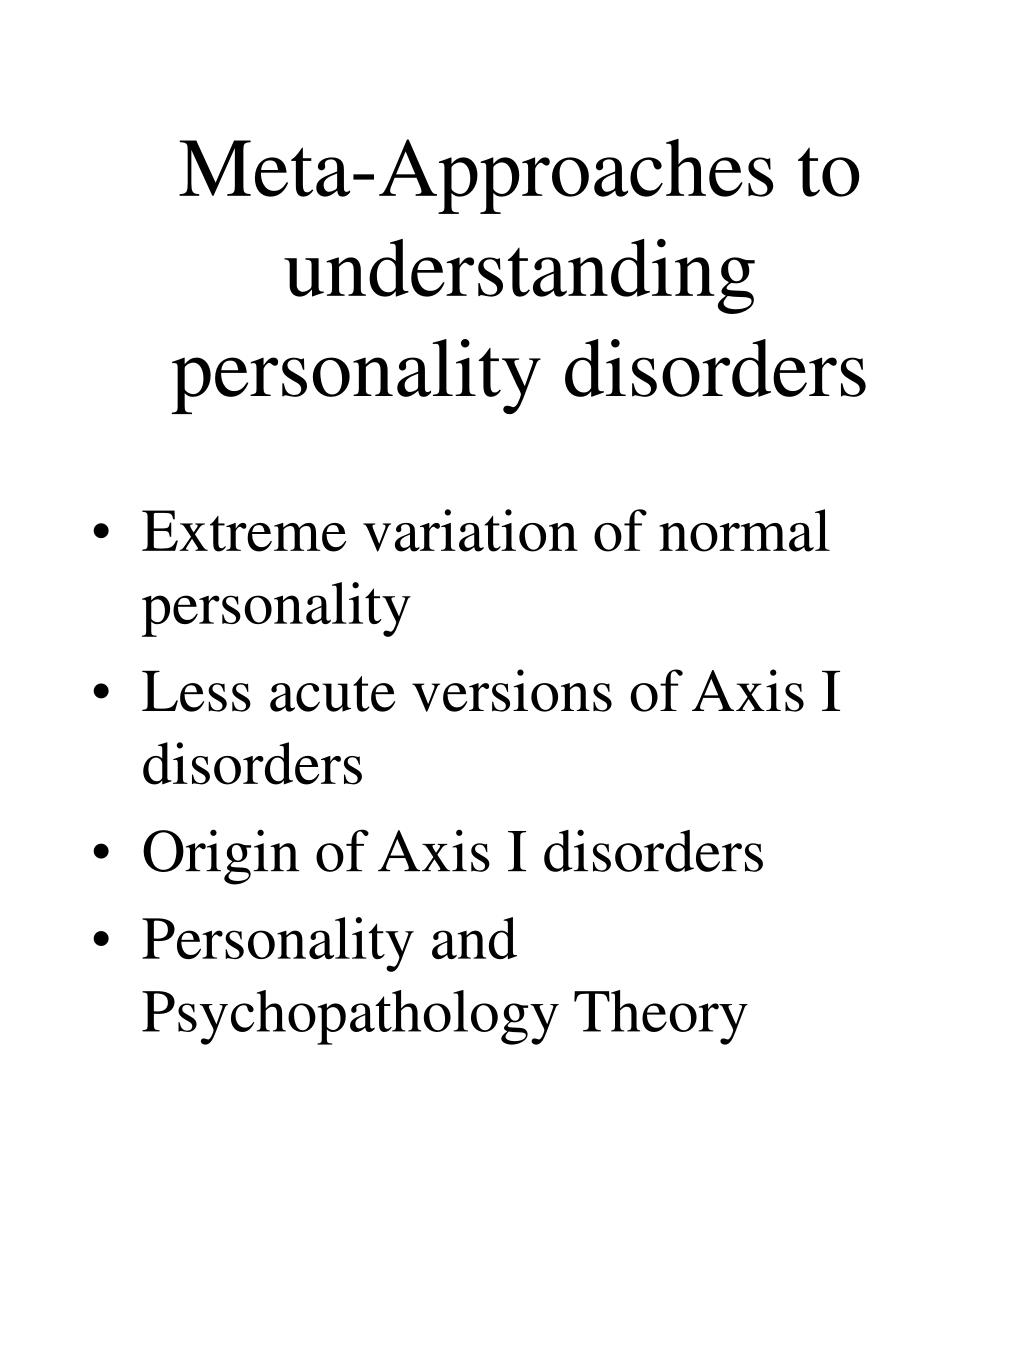 Meta-Approaches to understanding personality disorders